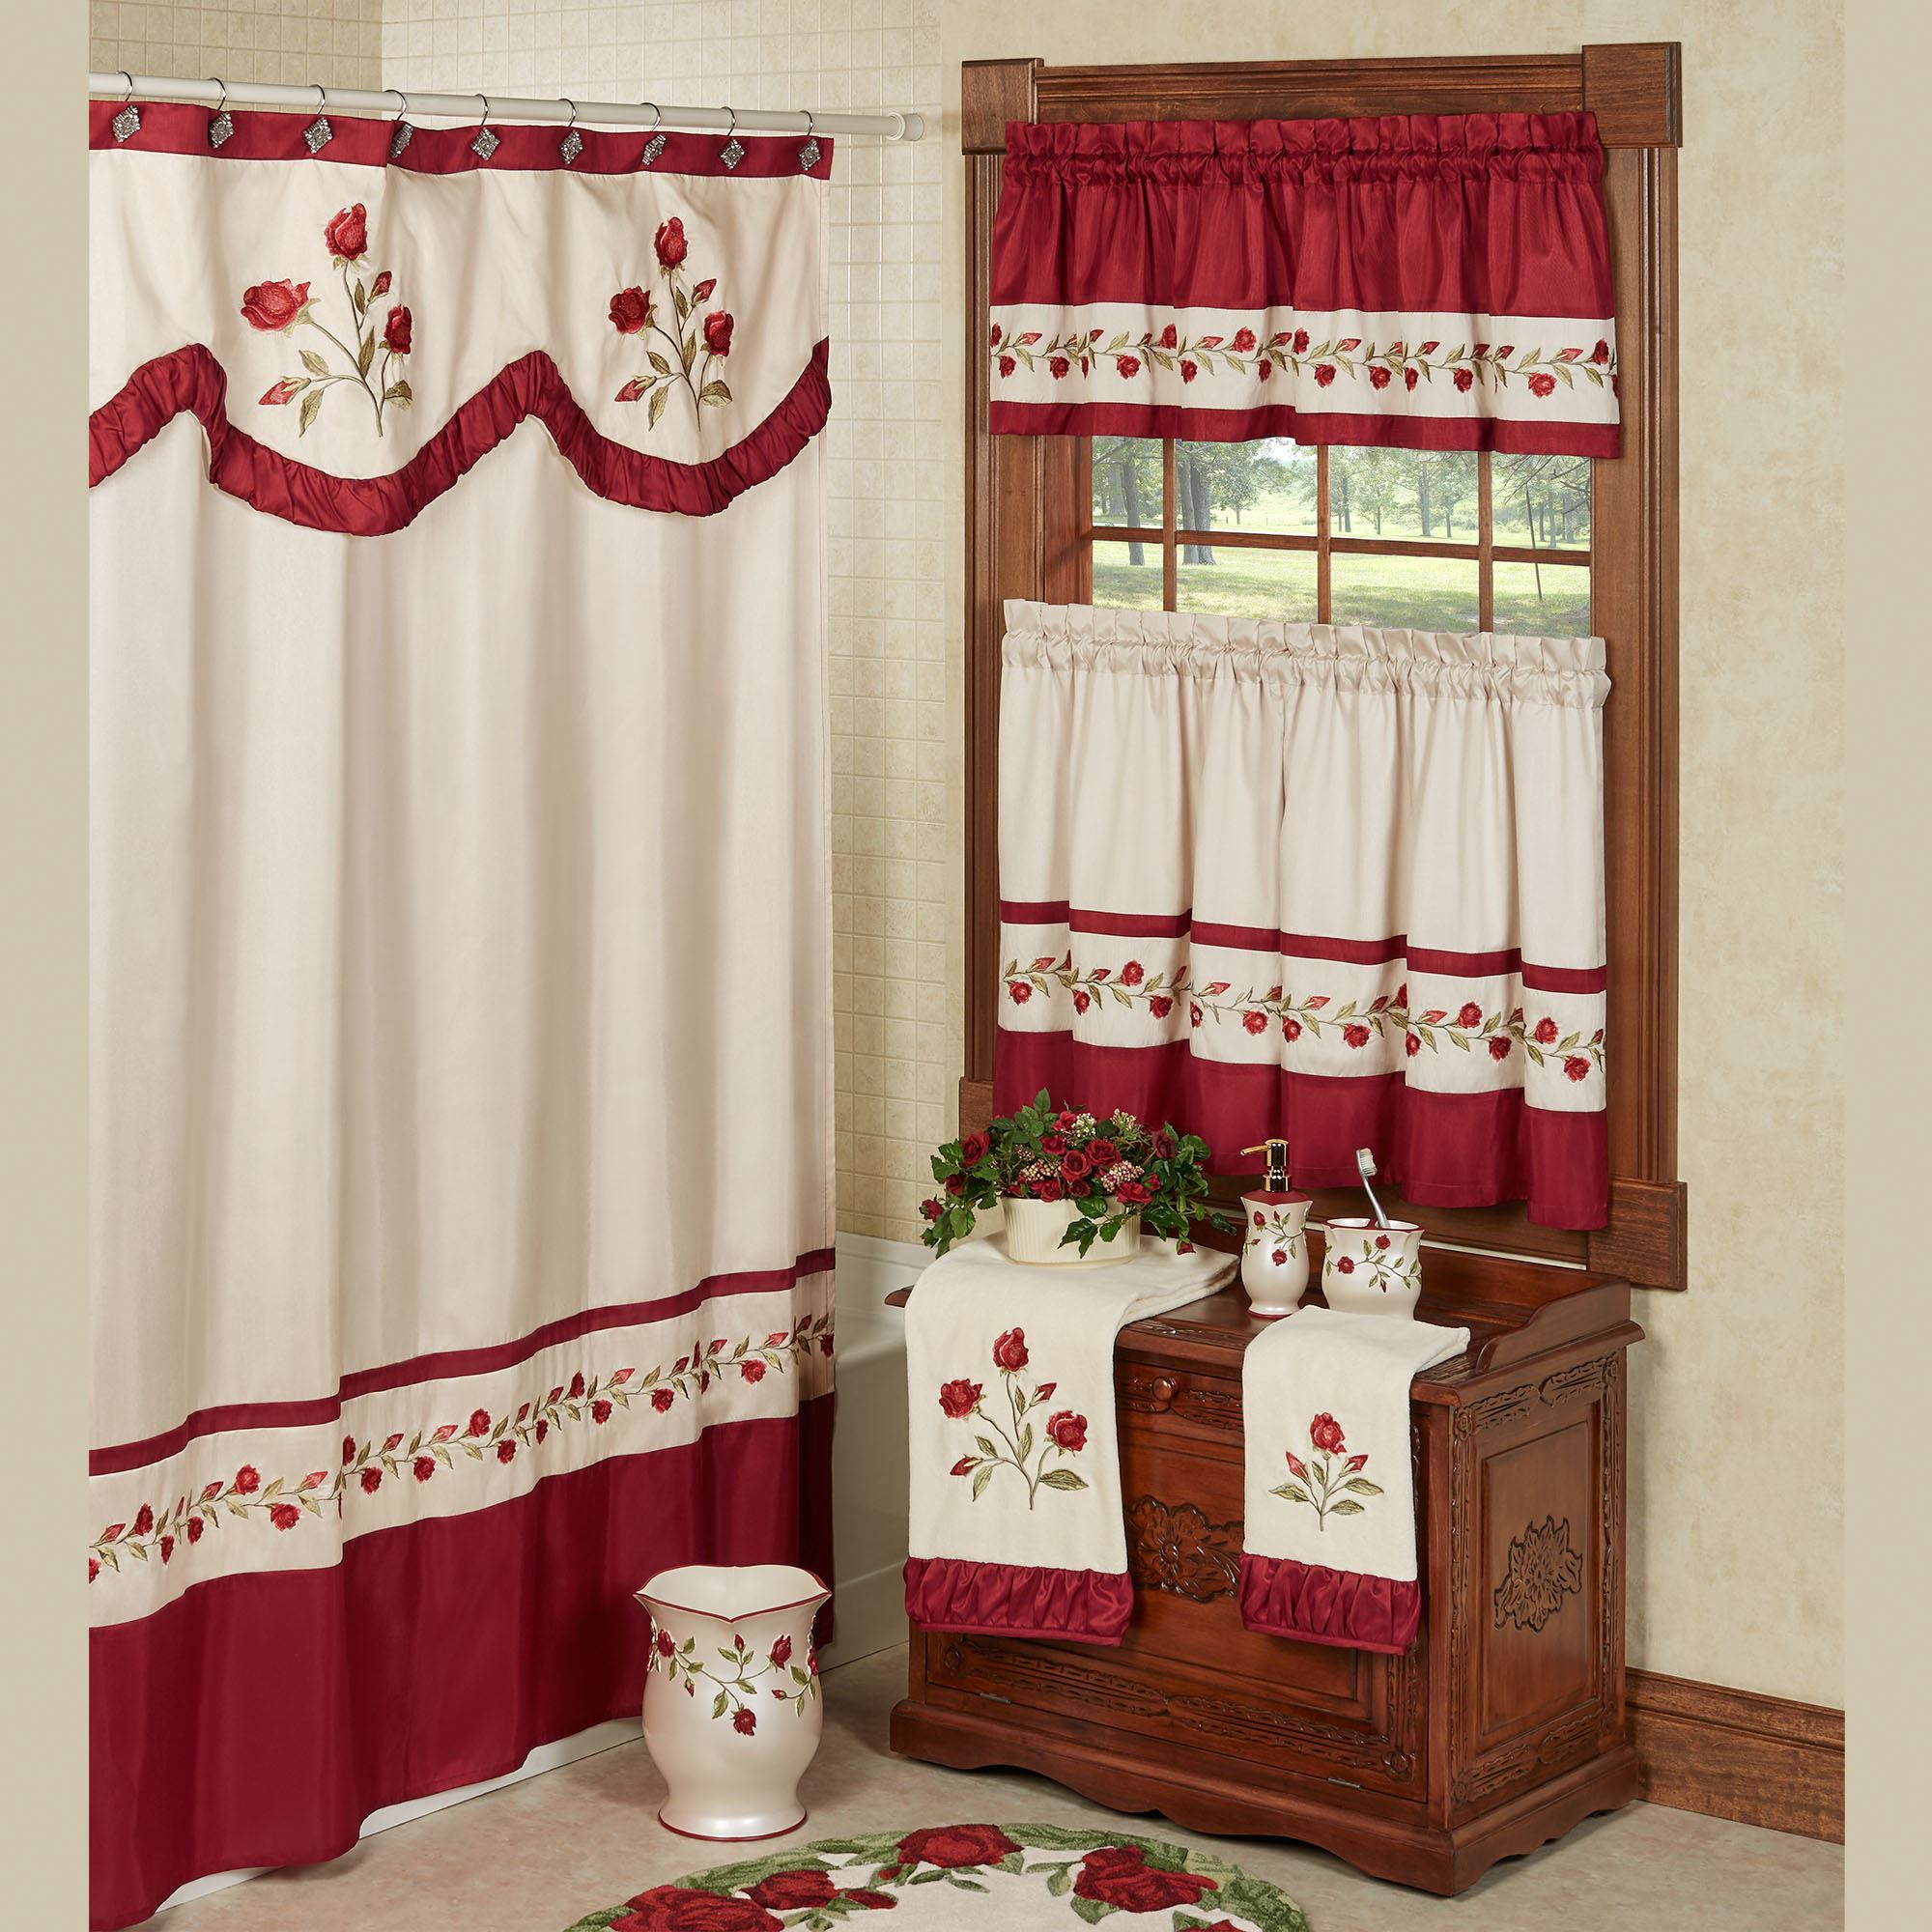 products curtains blush sweet interior shopcabin roses curtain shower